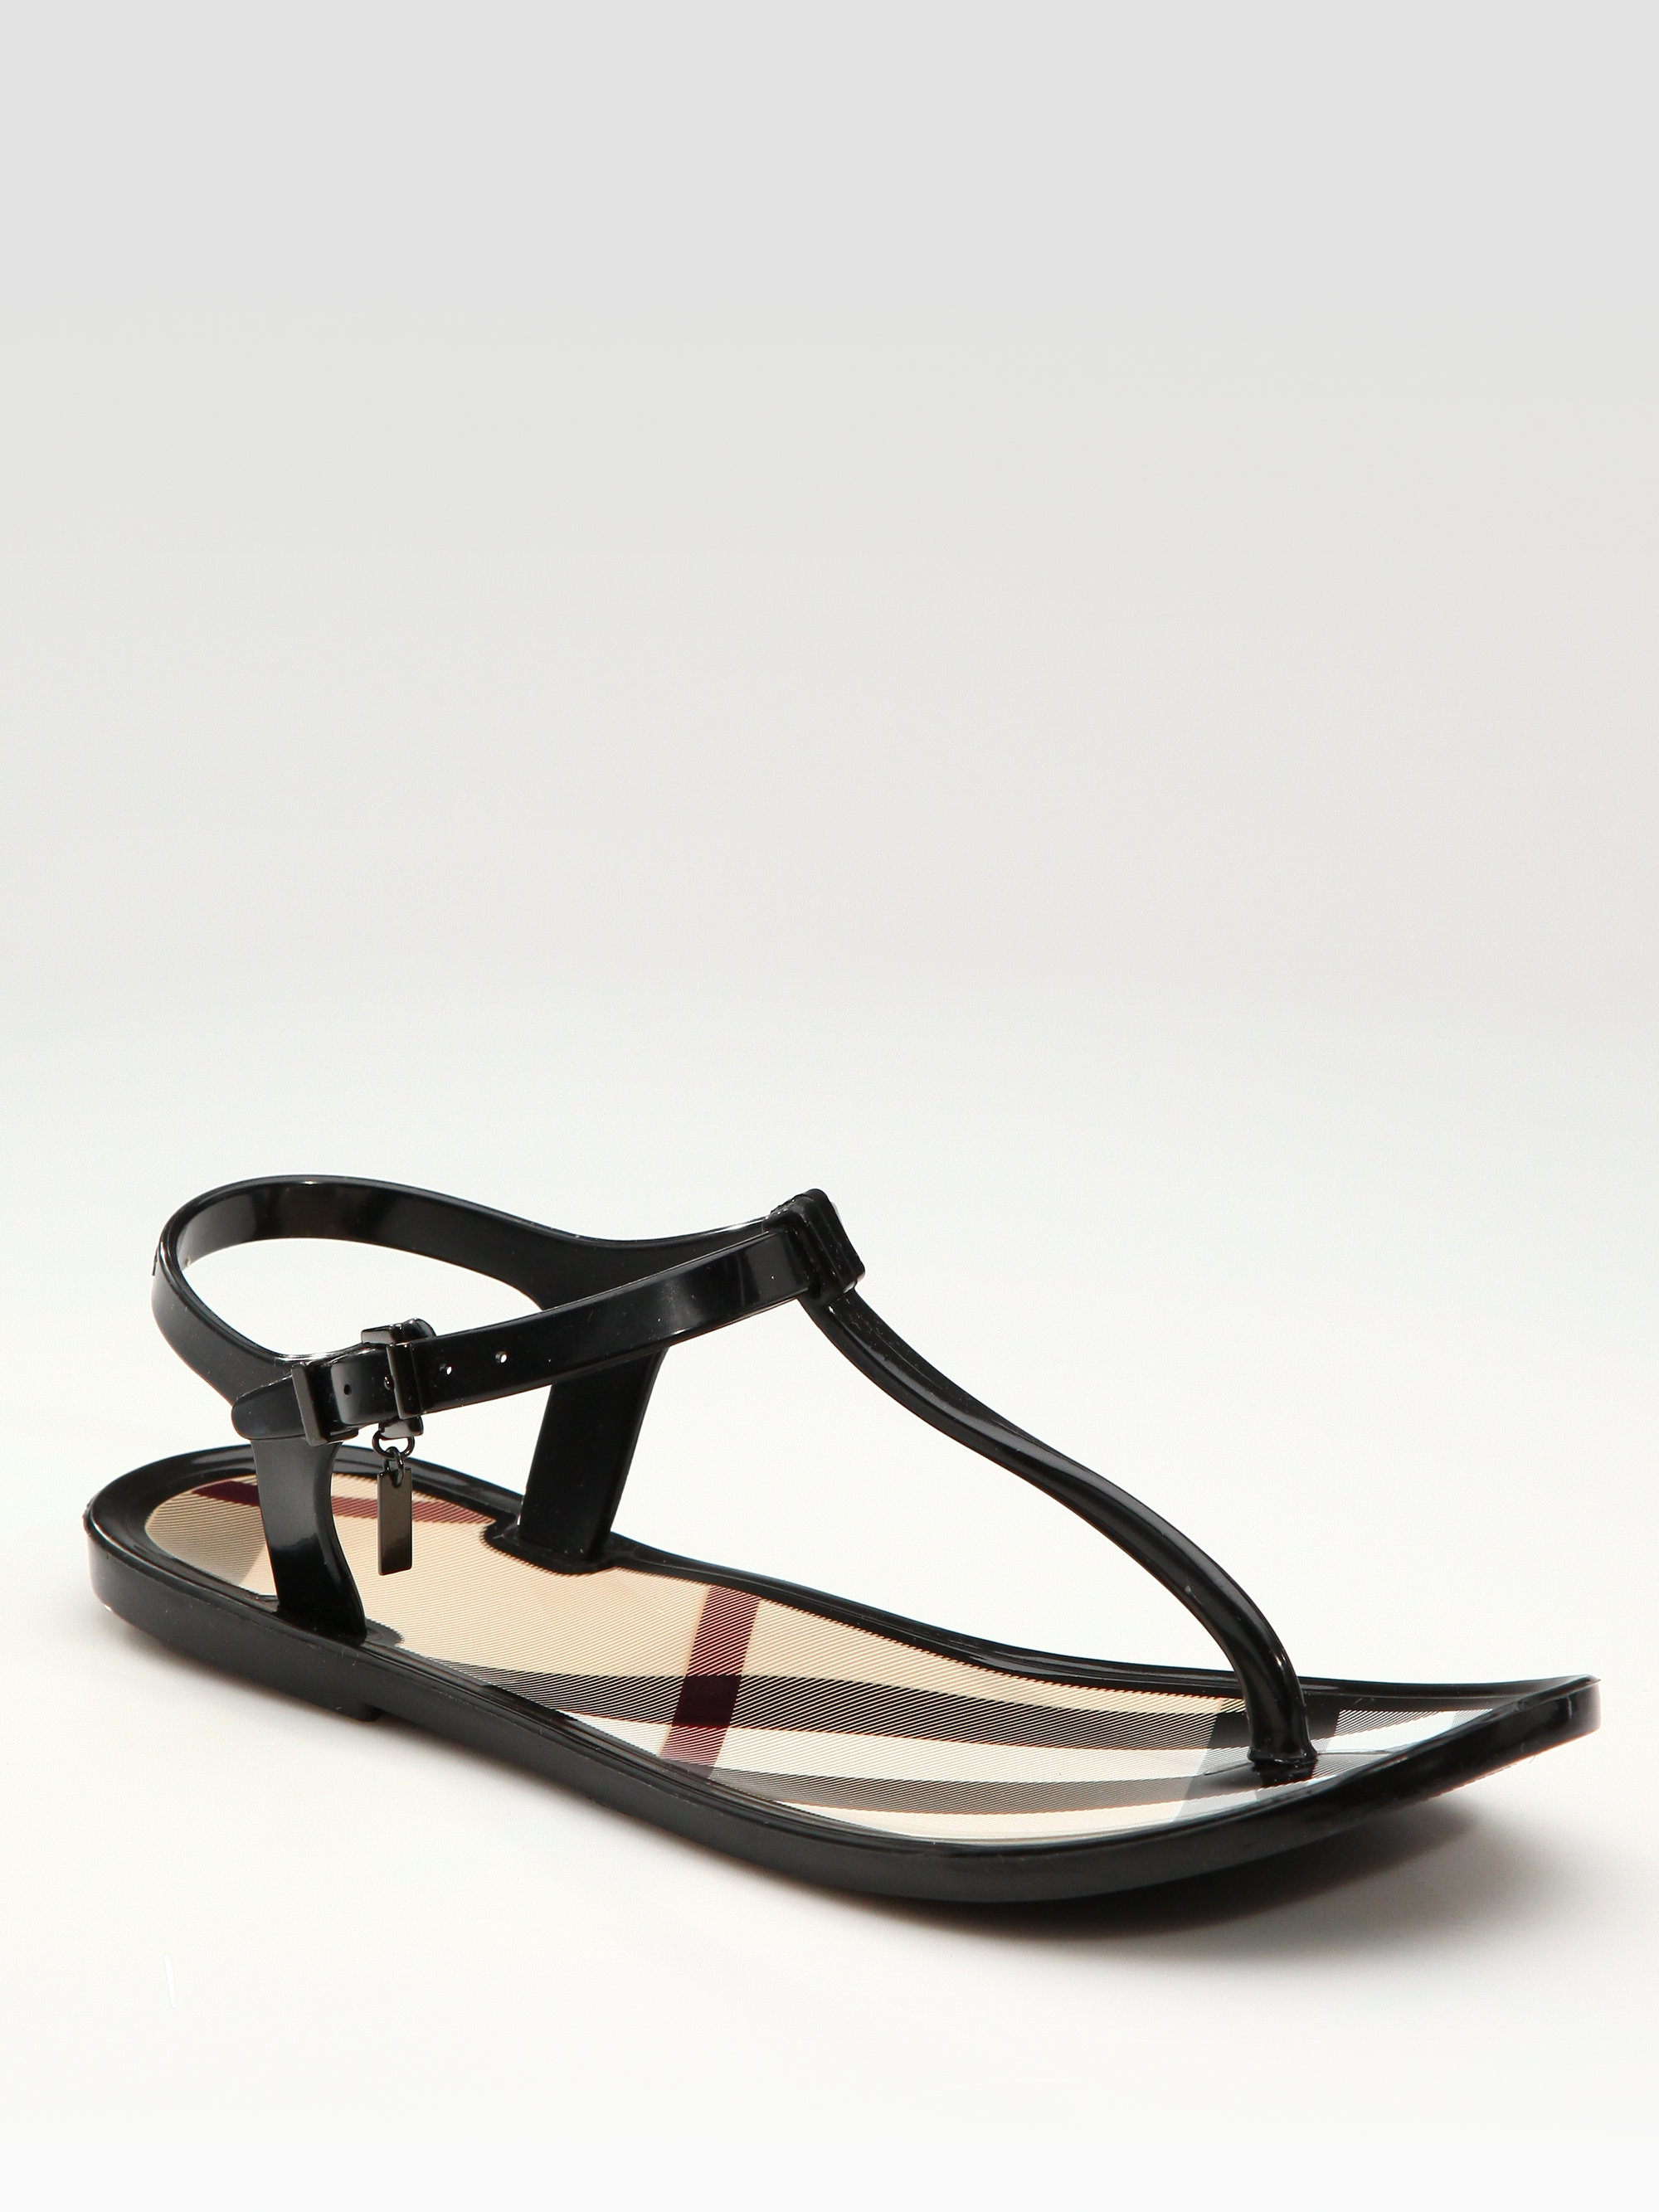 6a01a4a79ddf Lyst - Burberry Rubber Thong Sandals in Black